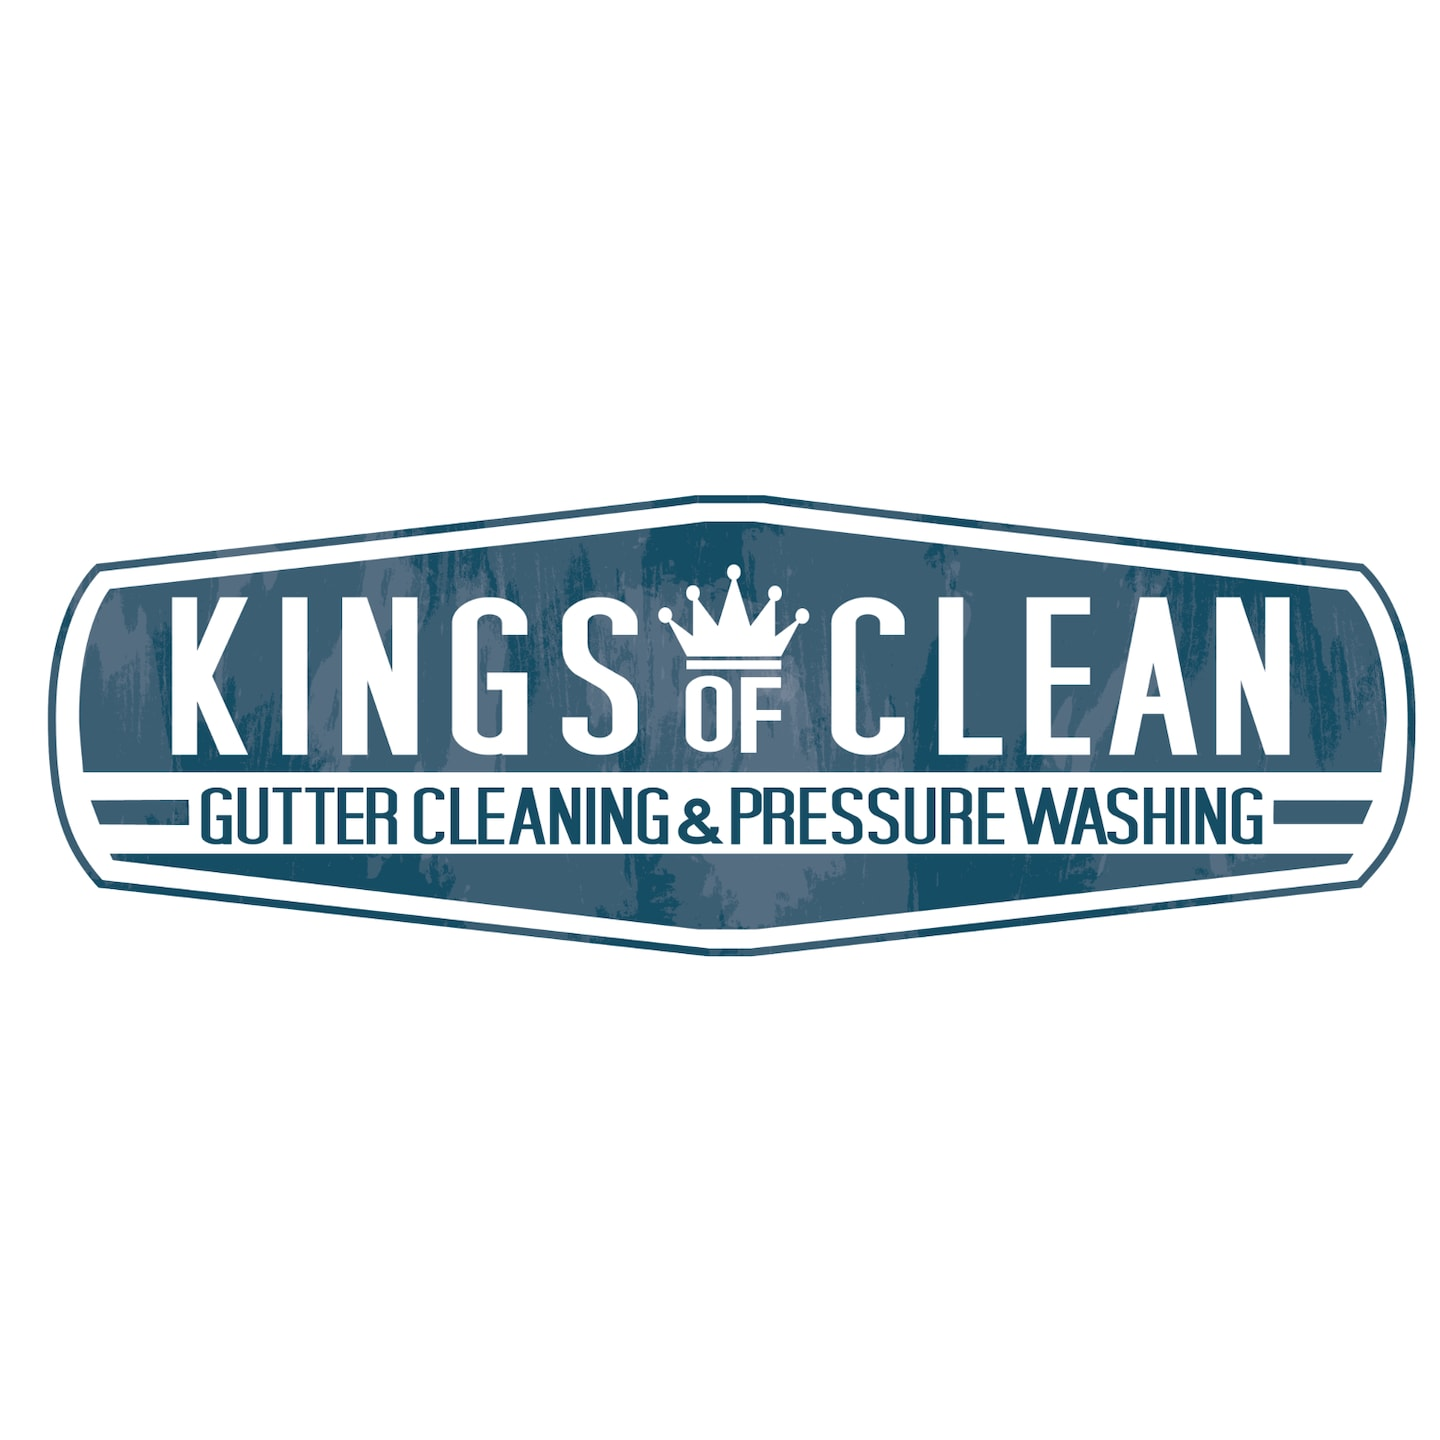 Kings of Clean